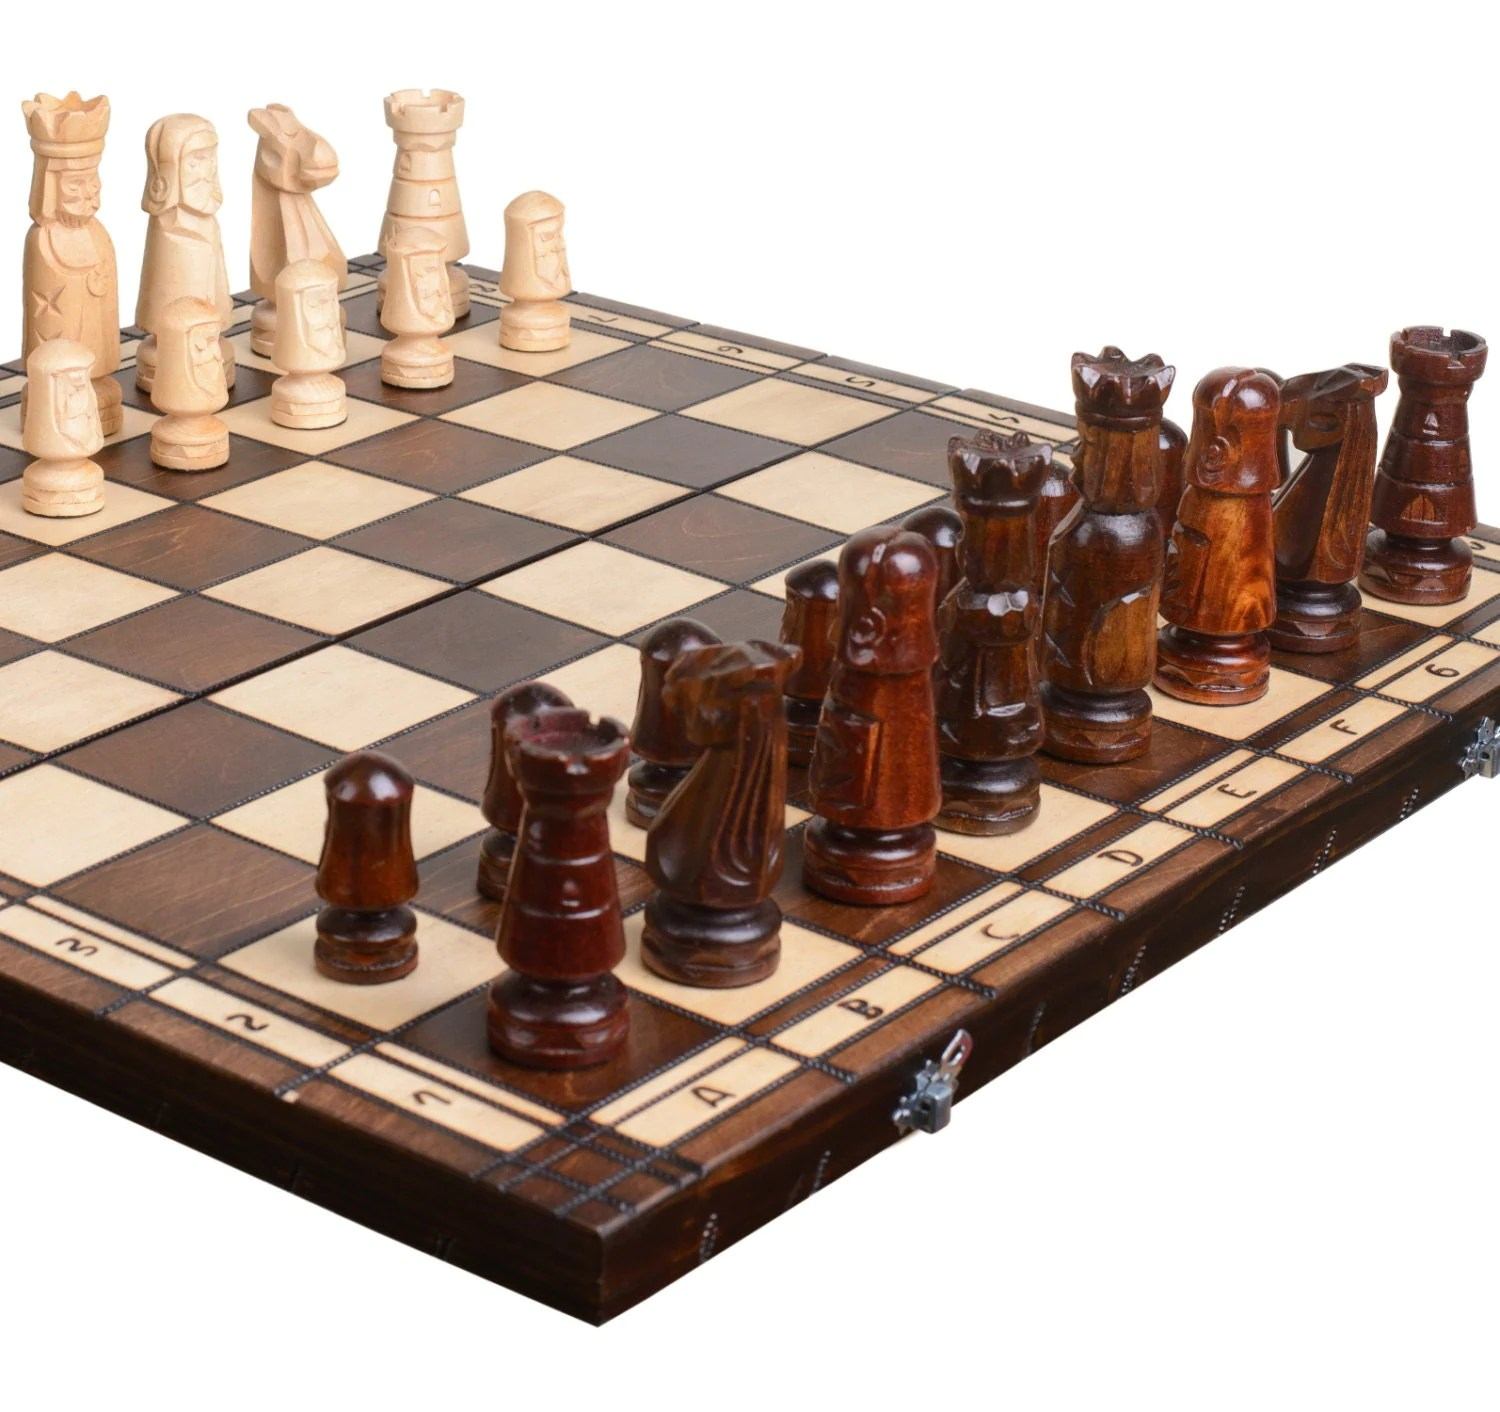 Personalized Chess Set Gift Mens Gift Husband Gift Wooden Chess Board Chess Set Wood